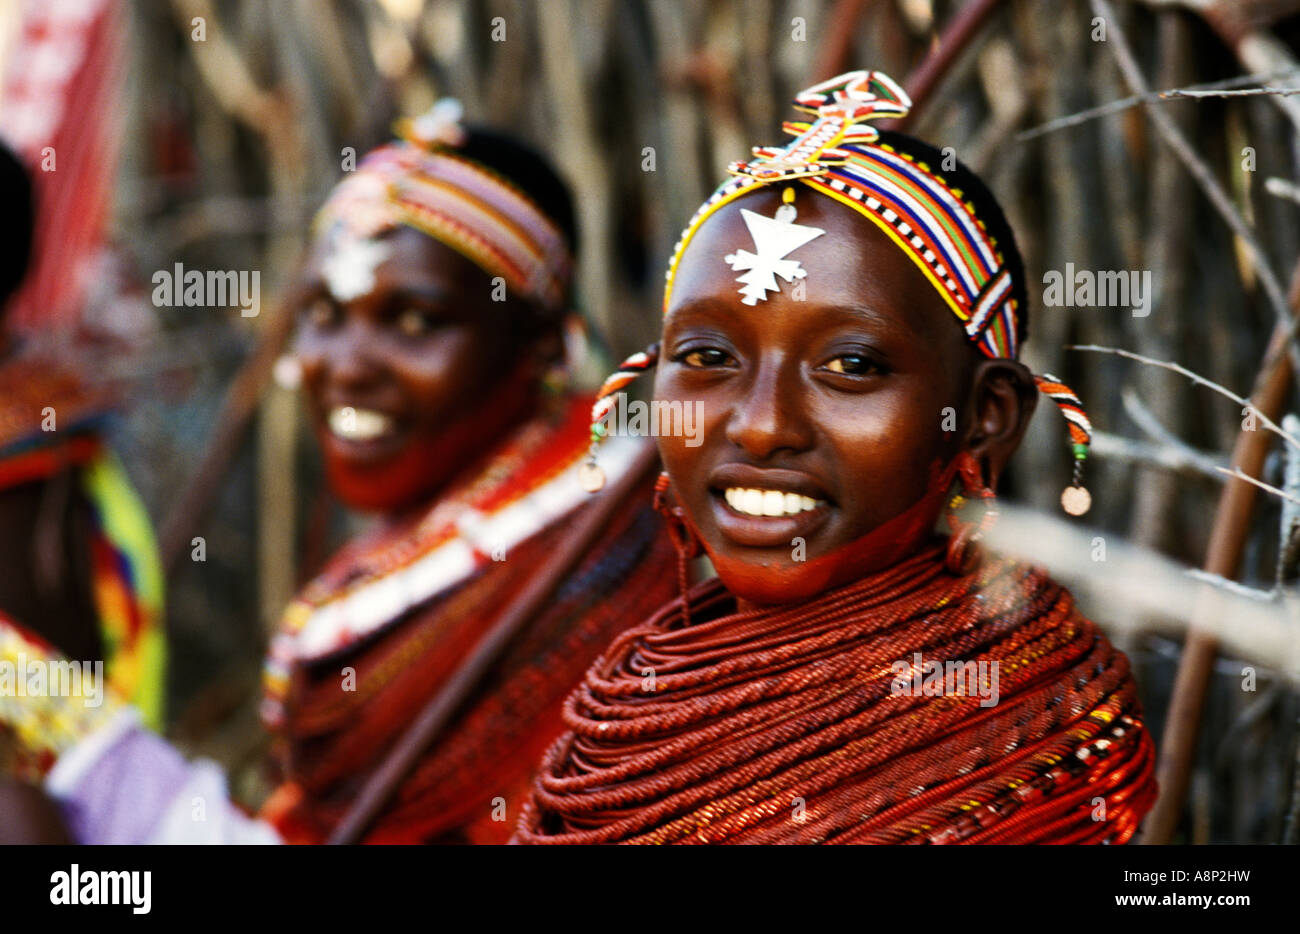 Matrimonio In Kenya : Samburu girl at wedding kenya stock photo: 12149748 alamy